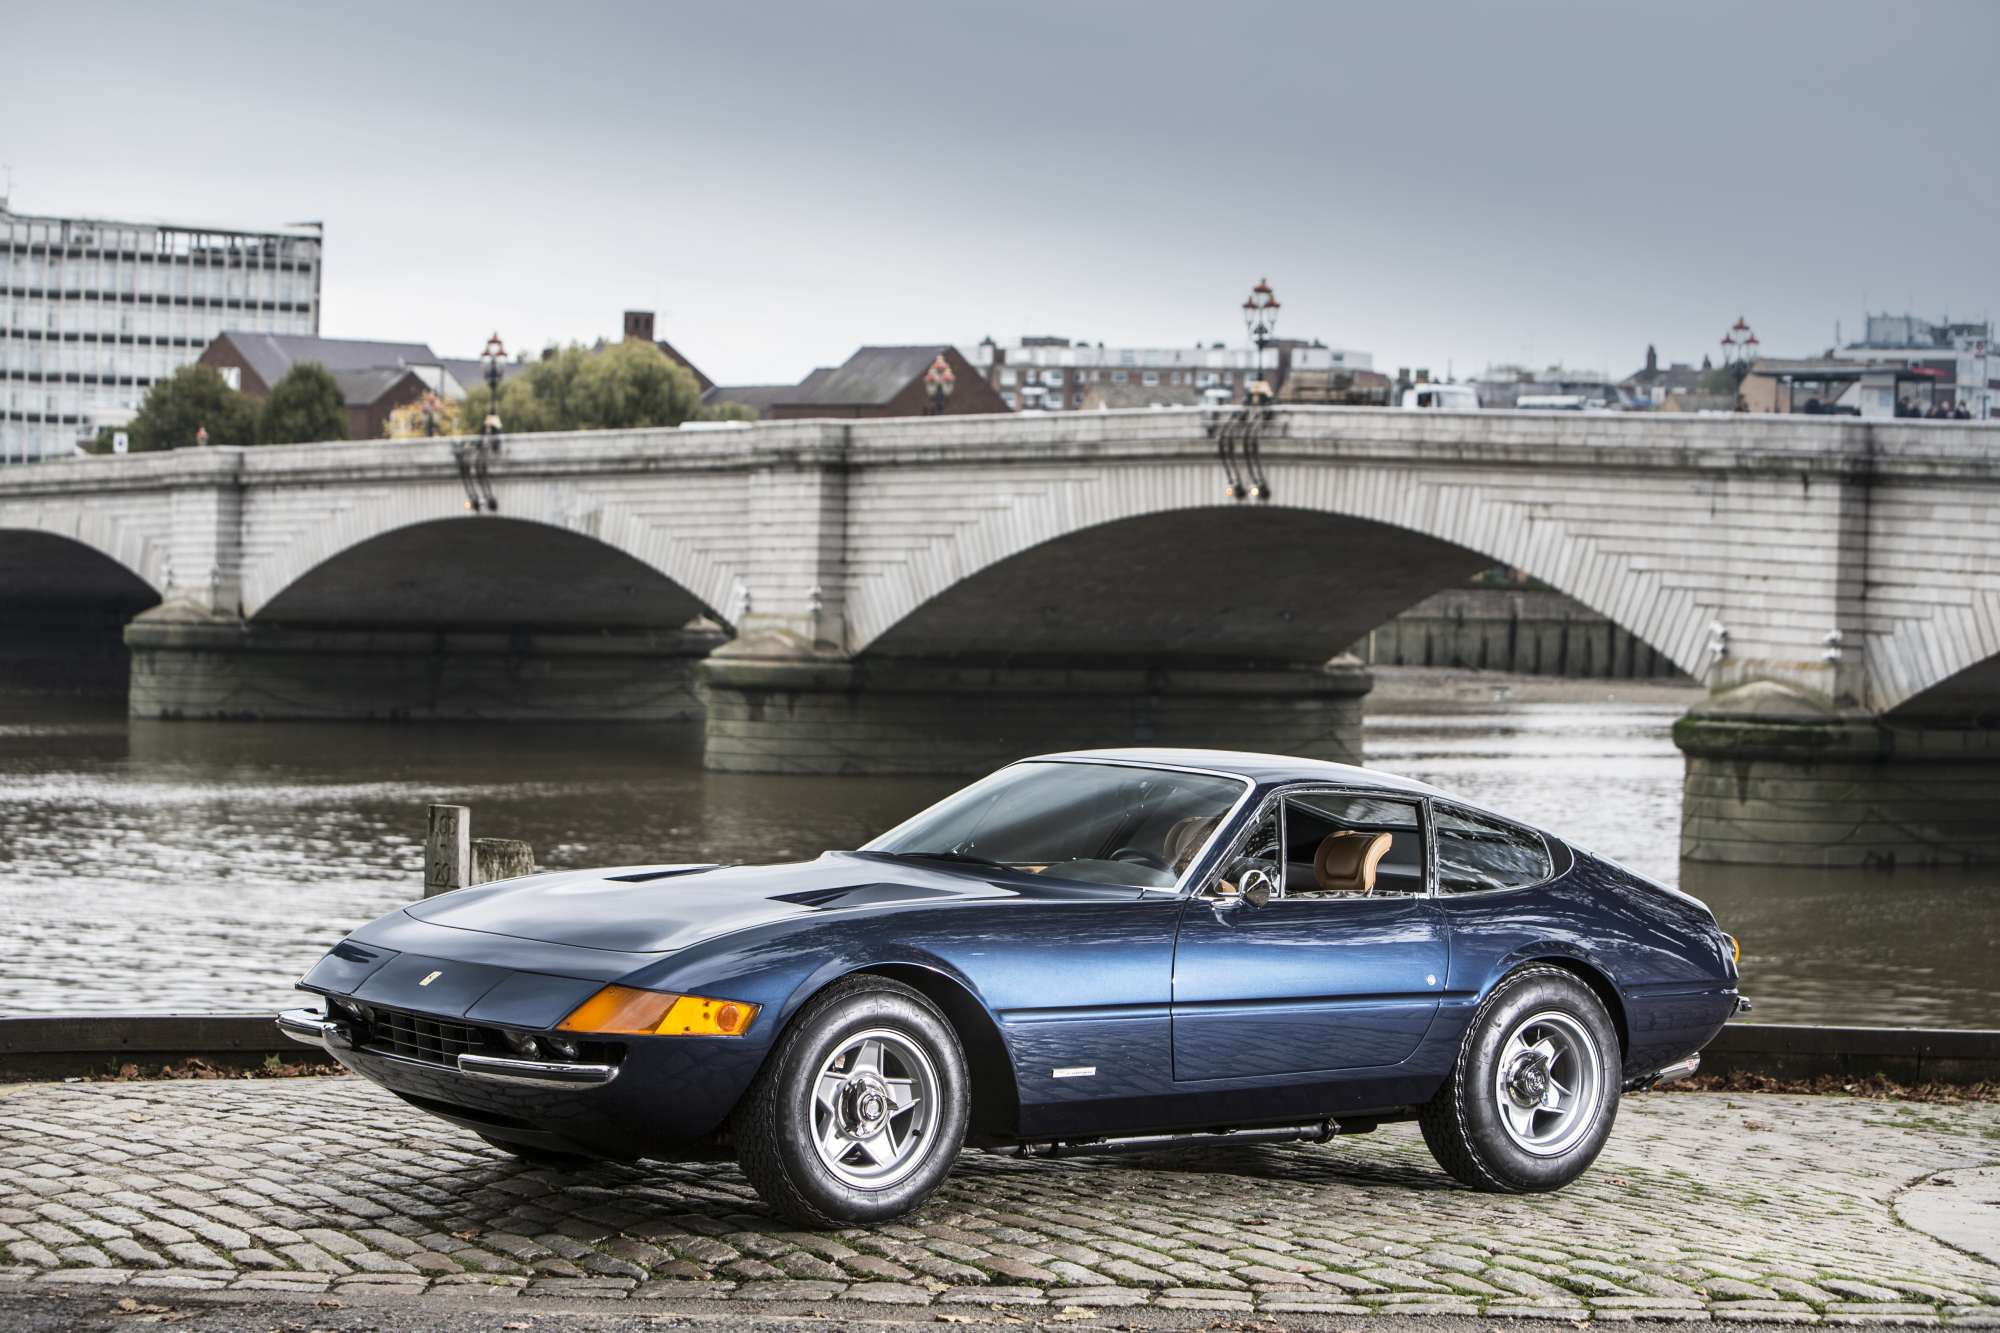 1972 Ferrari 365 Gtb 4 Daytona Previously Sold Fiskens